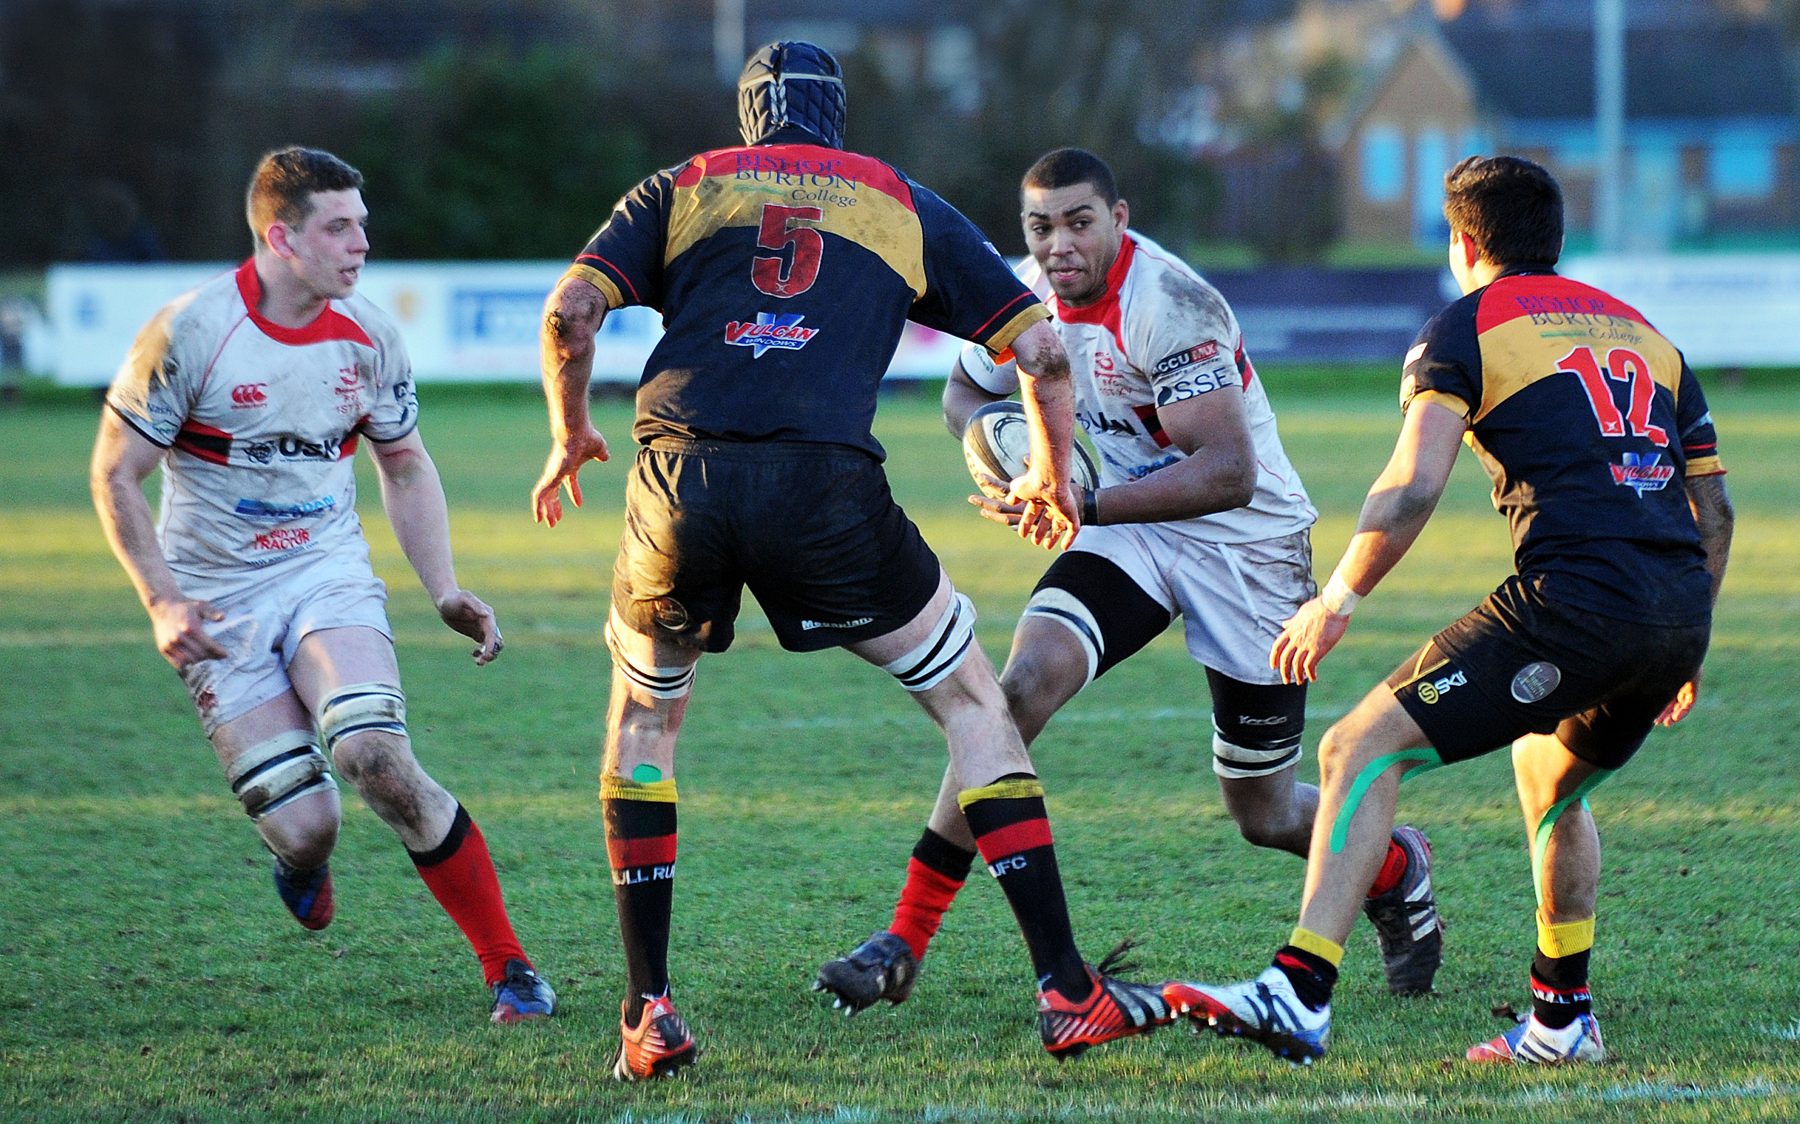 On the run: Bromsgrove's So Dacres tries to find a way through Hull's defence. Picture: PETE JEPSON